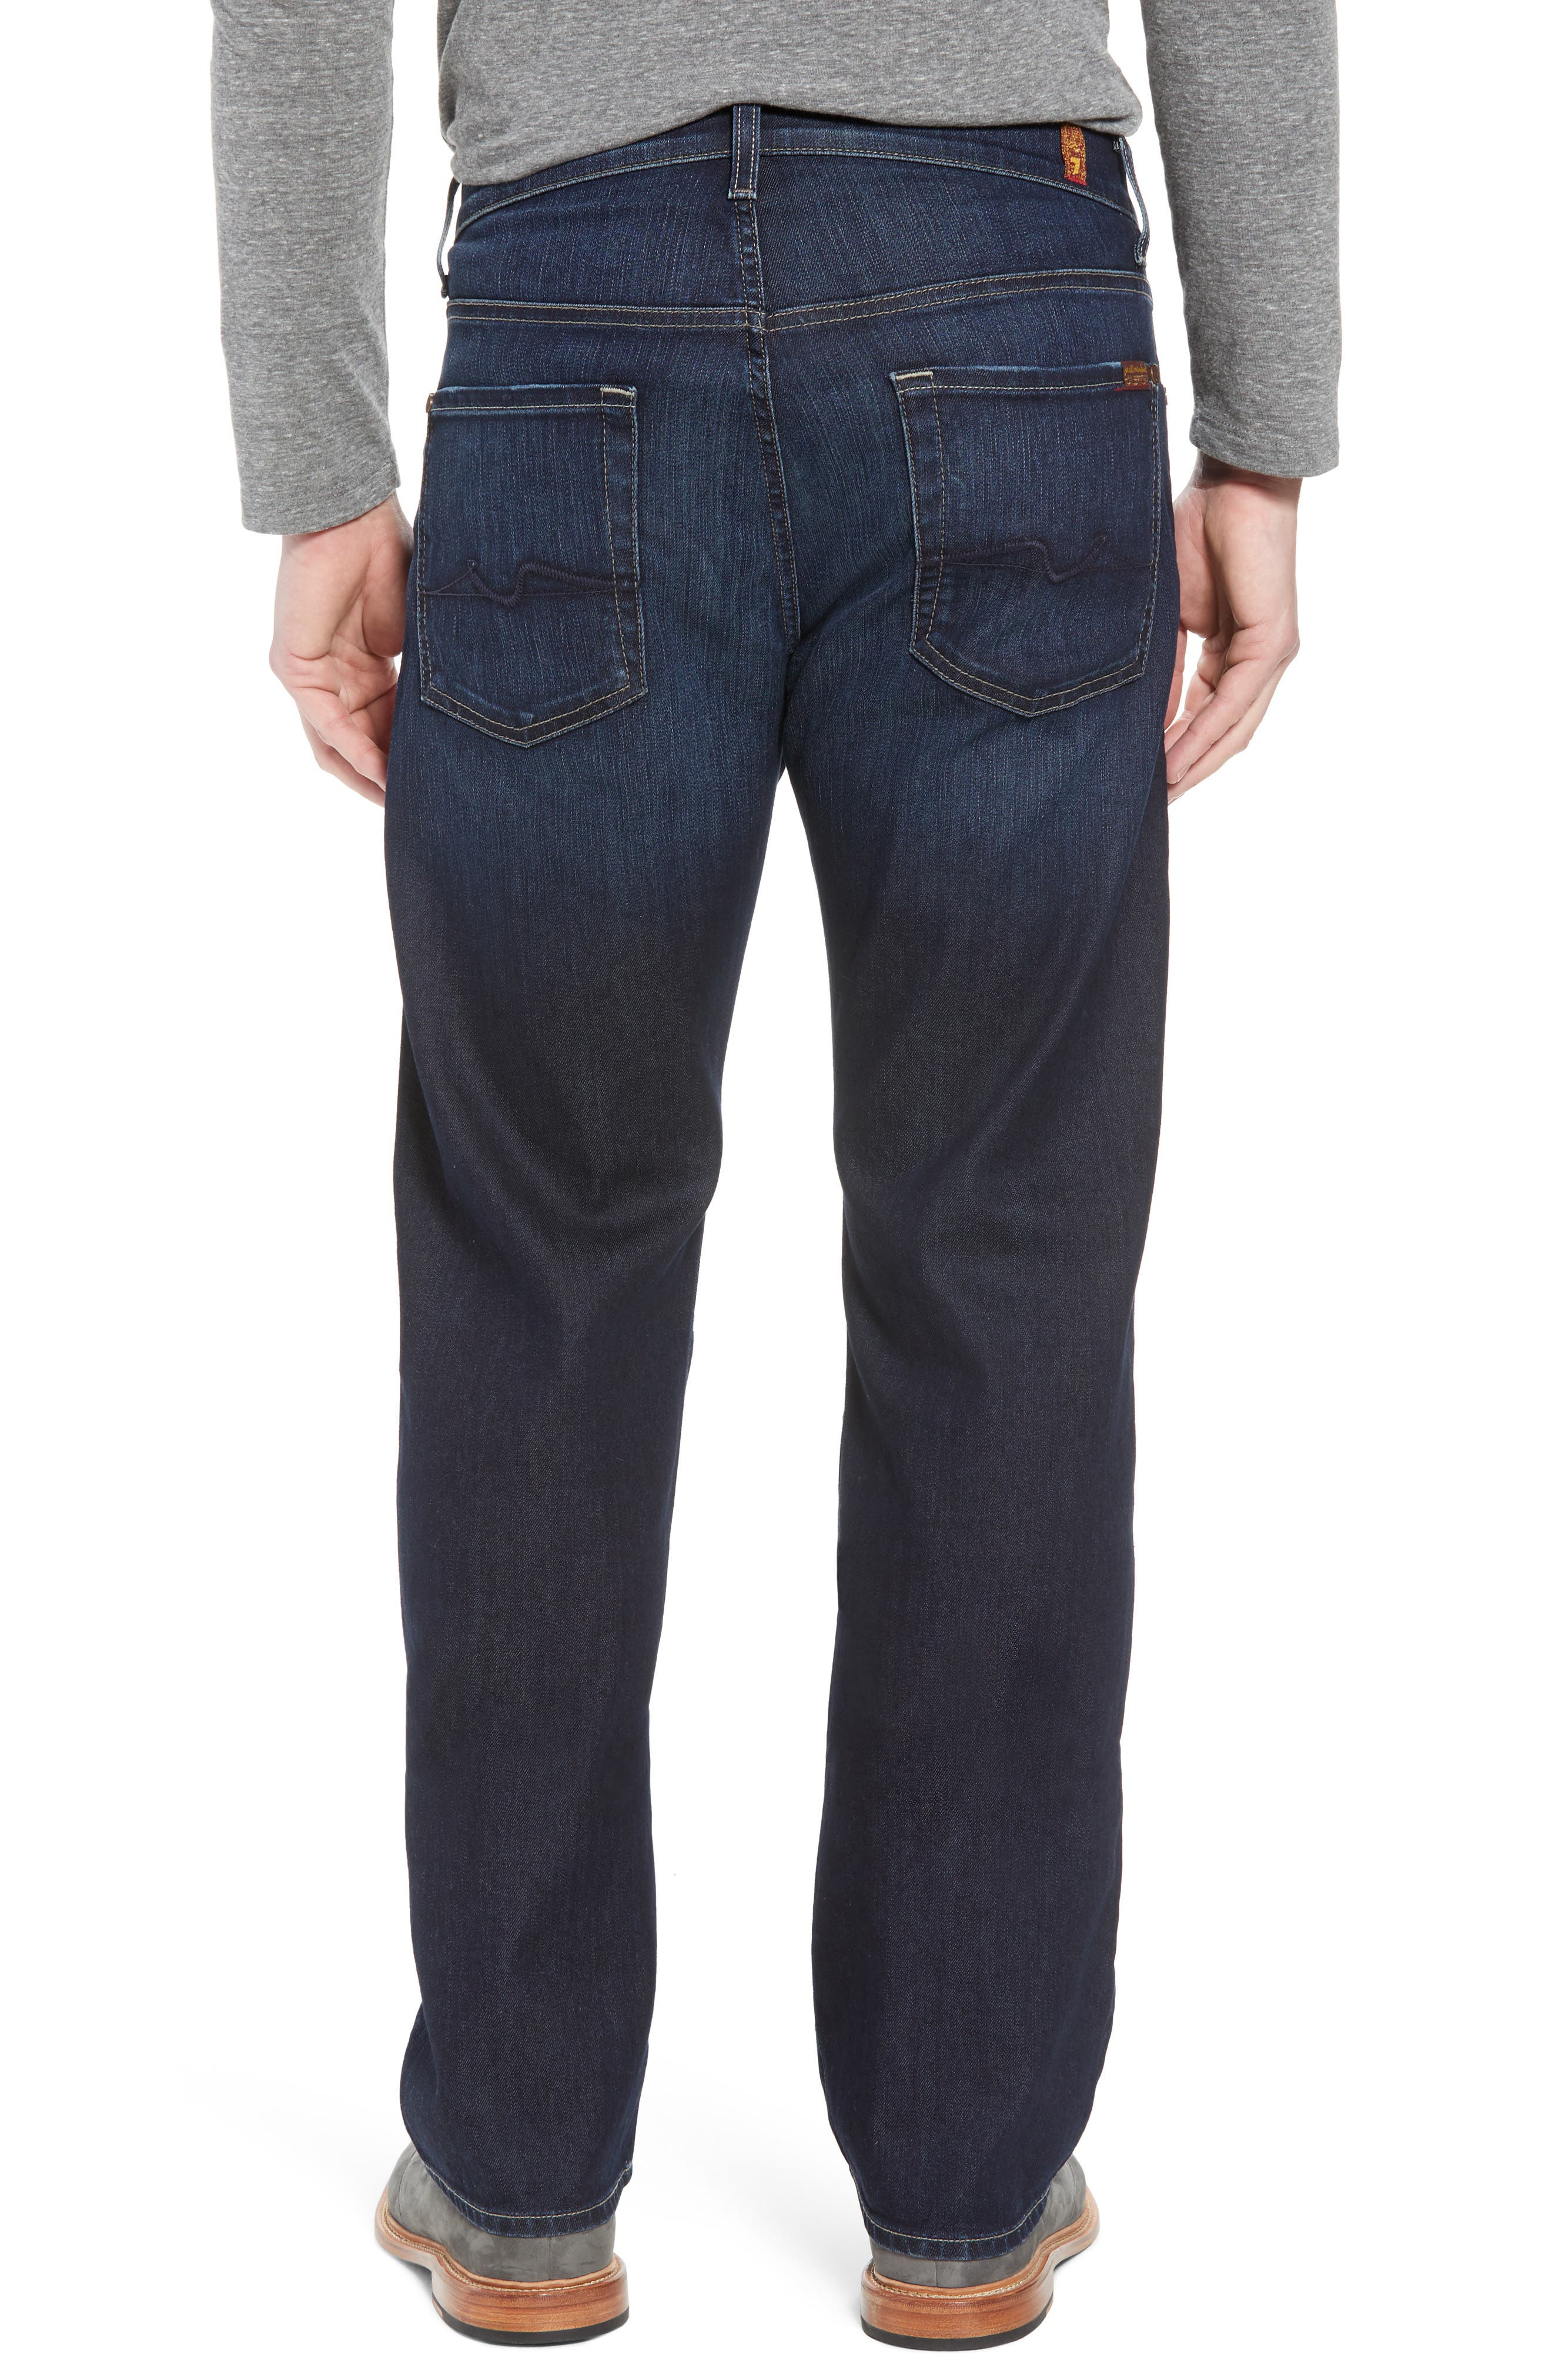 Airweft Austyn Relaxed Straight Leg Jeans,                             Alternate thumbnail 2, color,                             406